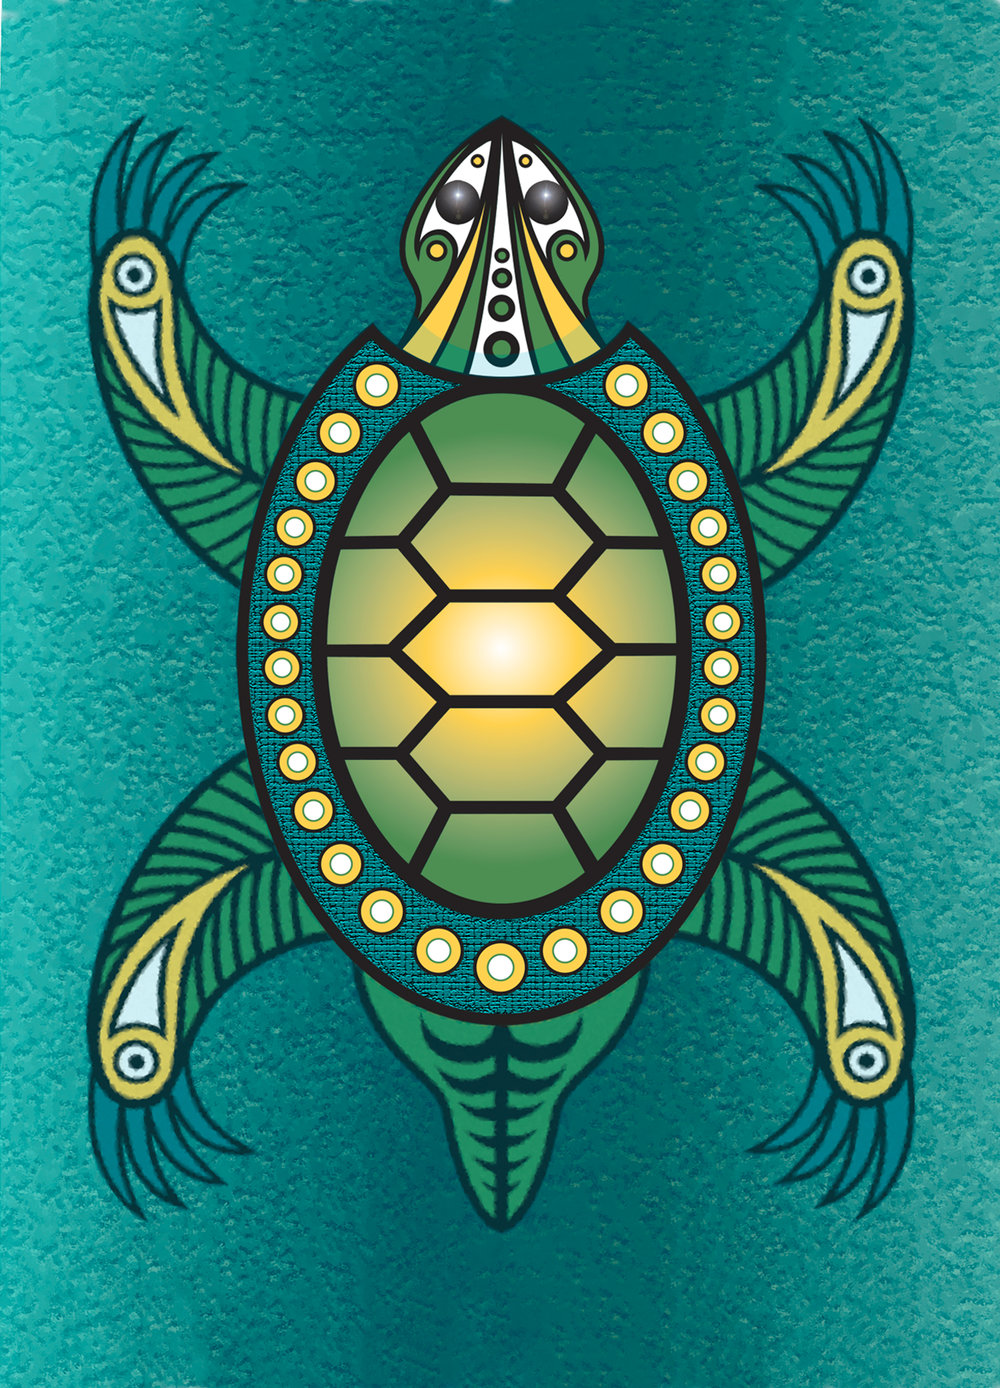 Turtle-Clan Design